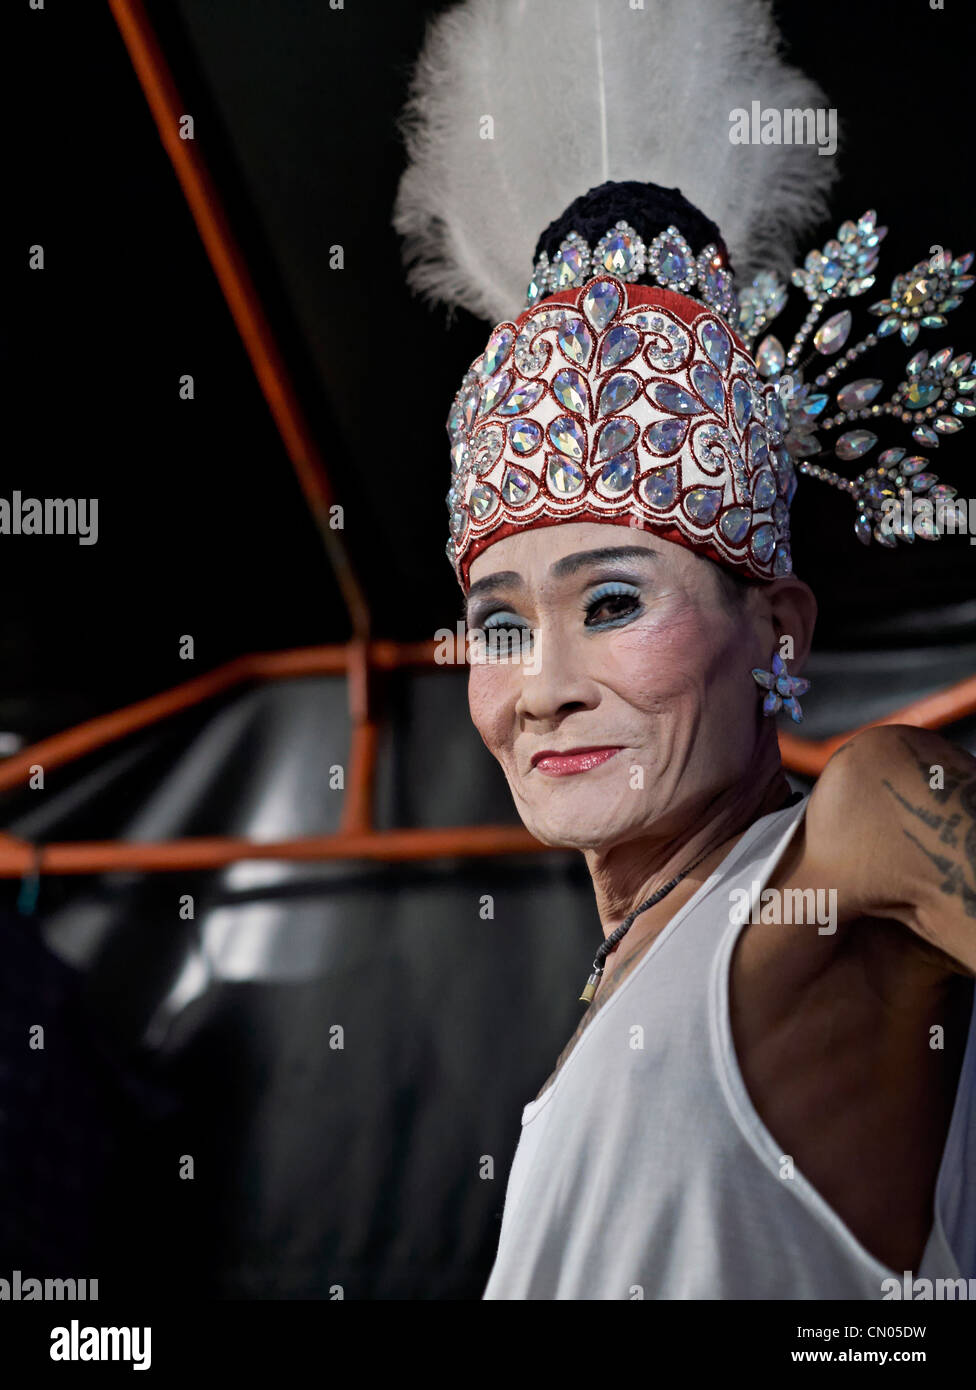 Thailand transsexual actor backstage prior to performance - Stock Image